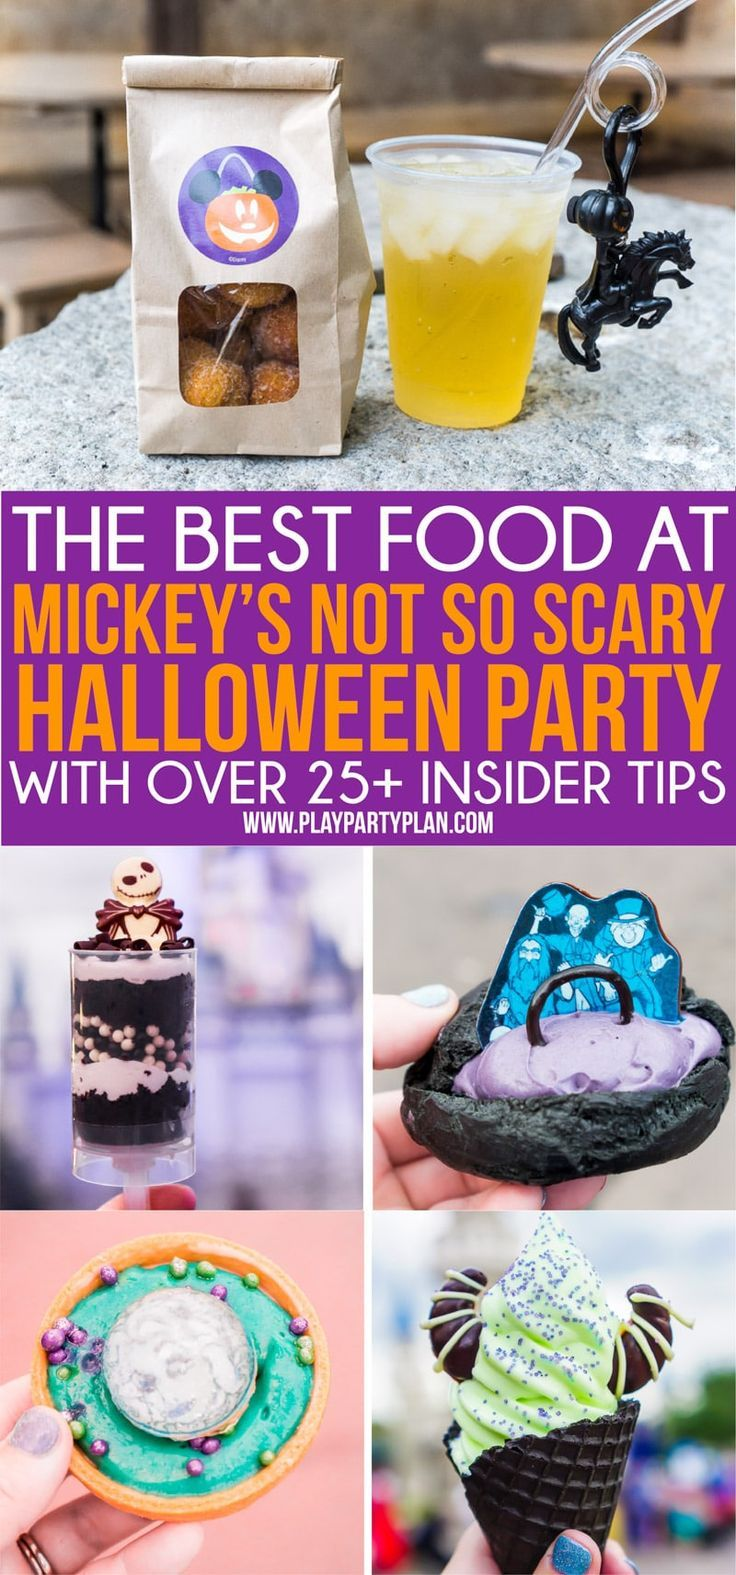 Disney Halloween Food Guide 2020 Ultimate Guide to 2020 Mickey's Not So Scary Halloween Party